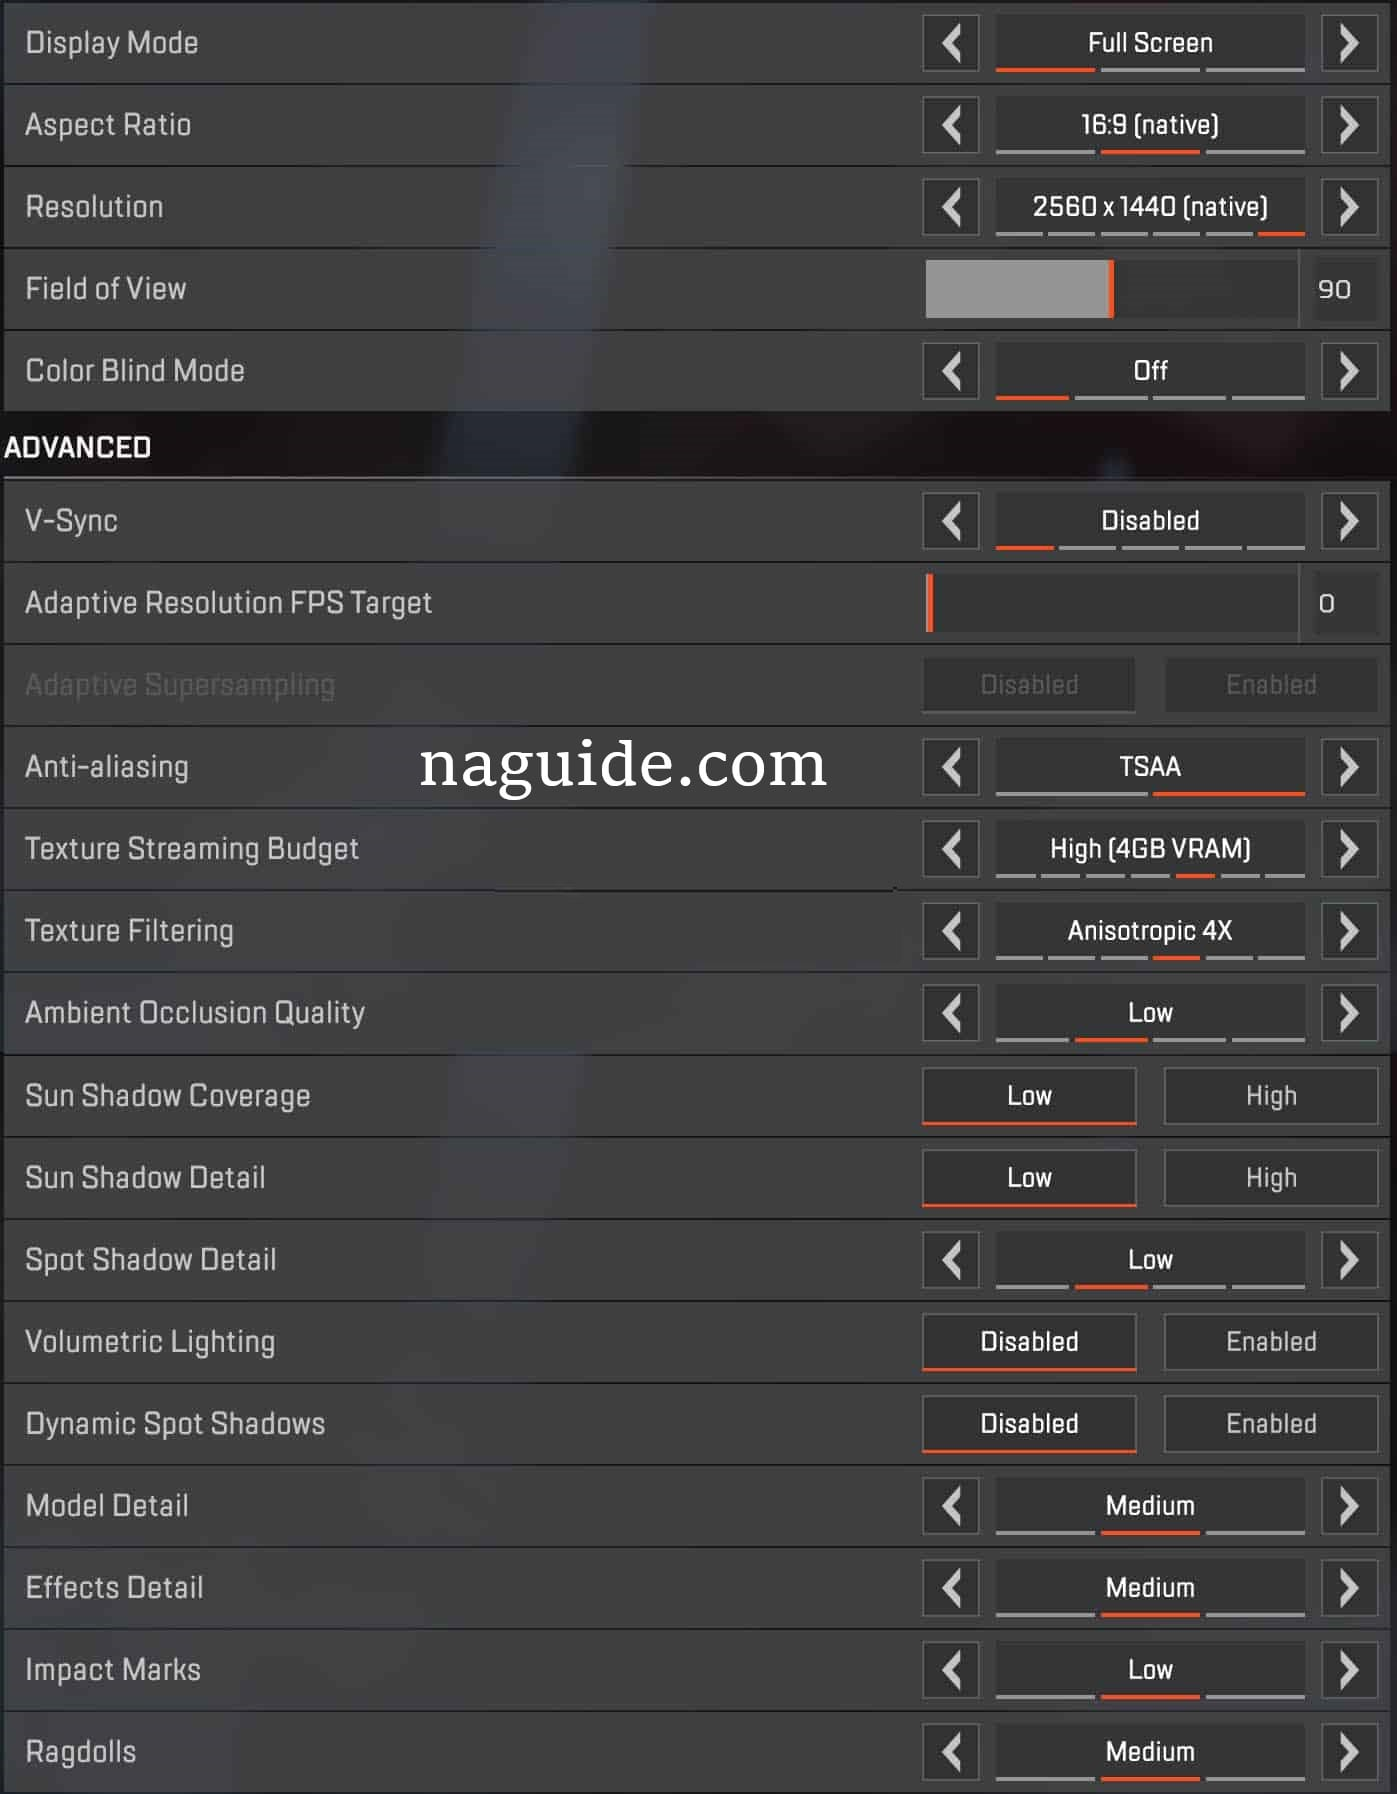 Apex Legends Best Settings FPS and Sight - Naguide